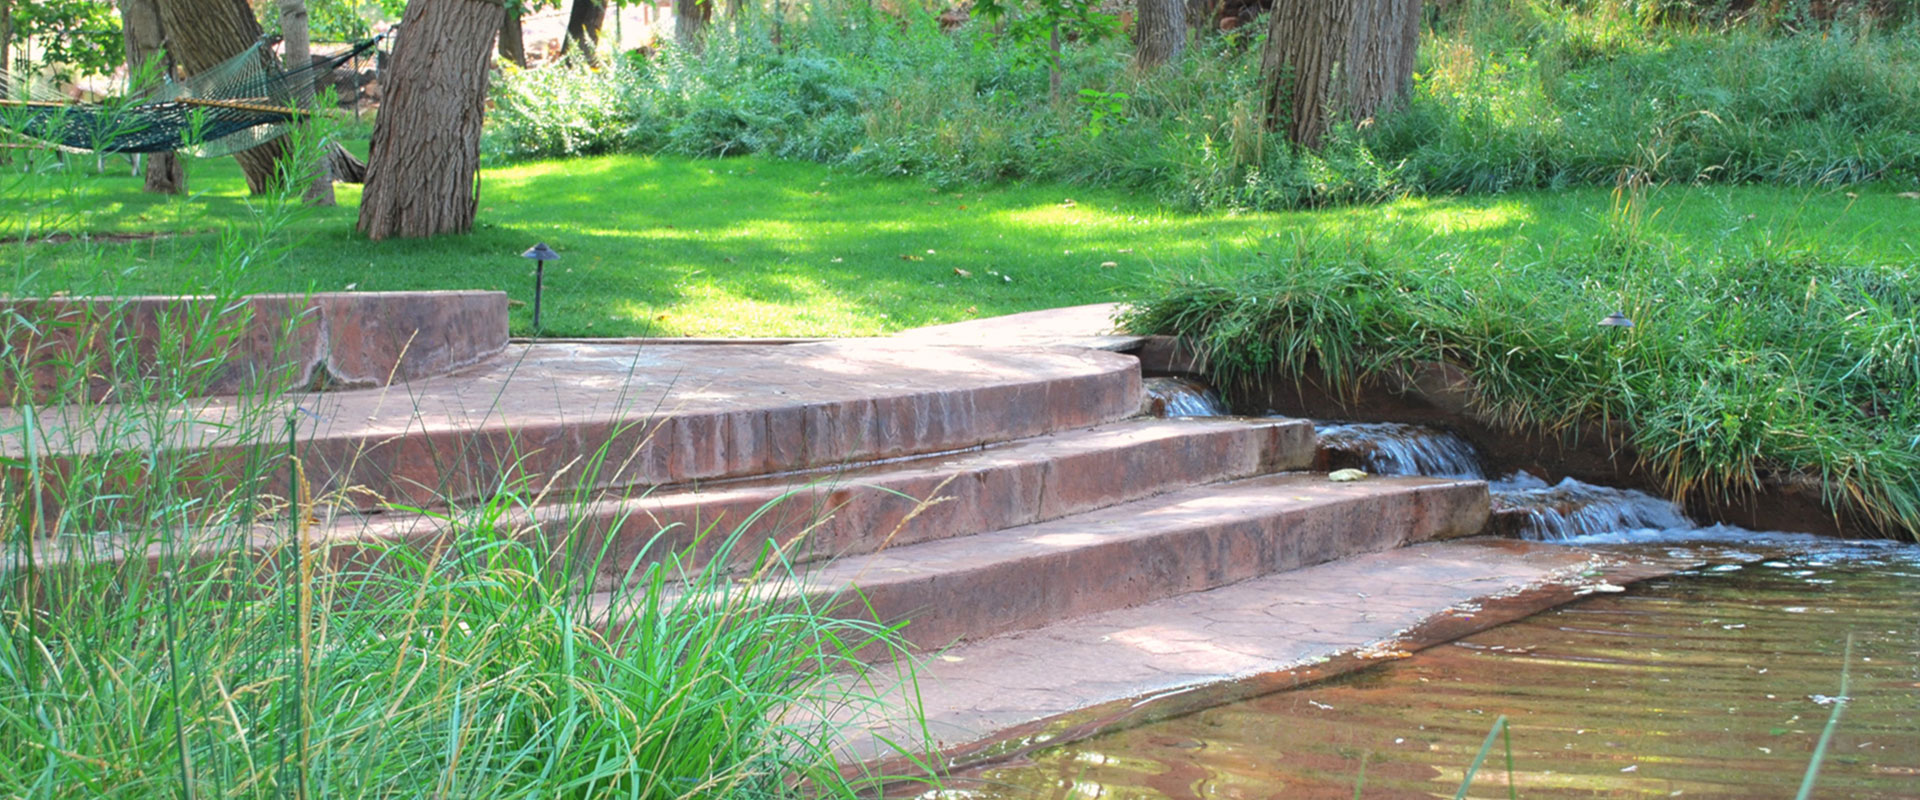 Against the backdrop of the vibrant green grasslands and a picnic table in the private parkspace at Moab Springs Ranch, hammocks are tied to strong and sturdy tree trunks.